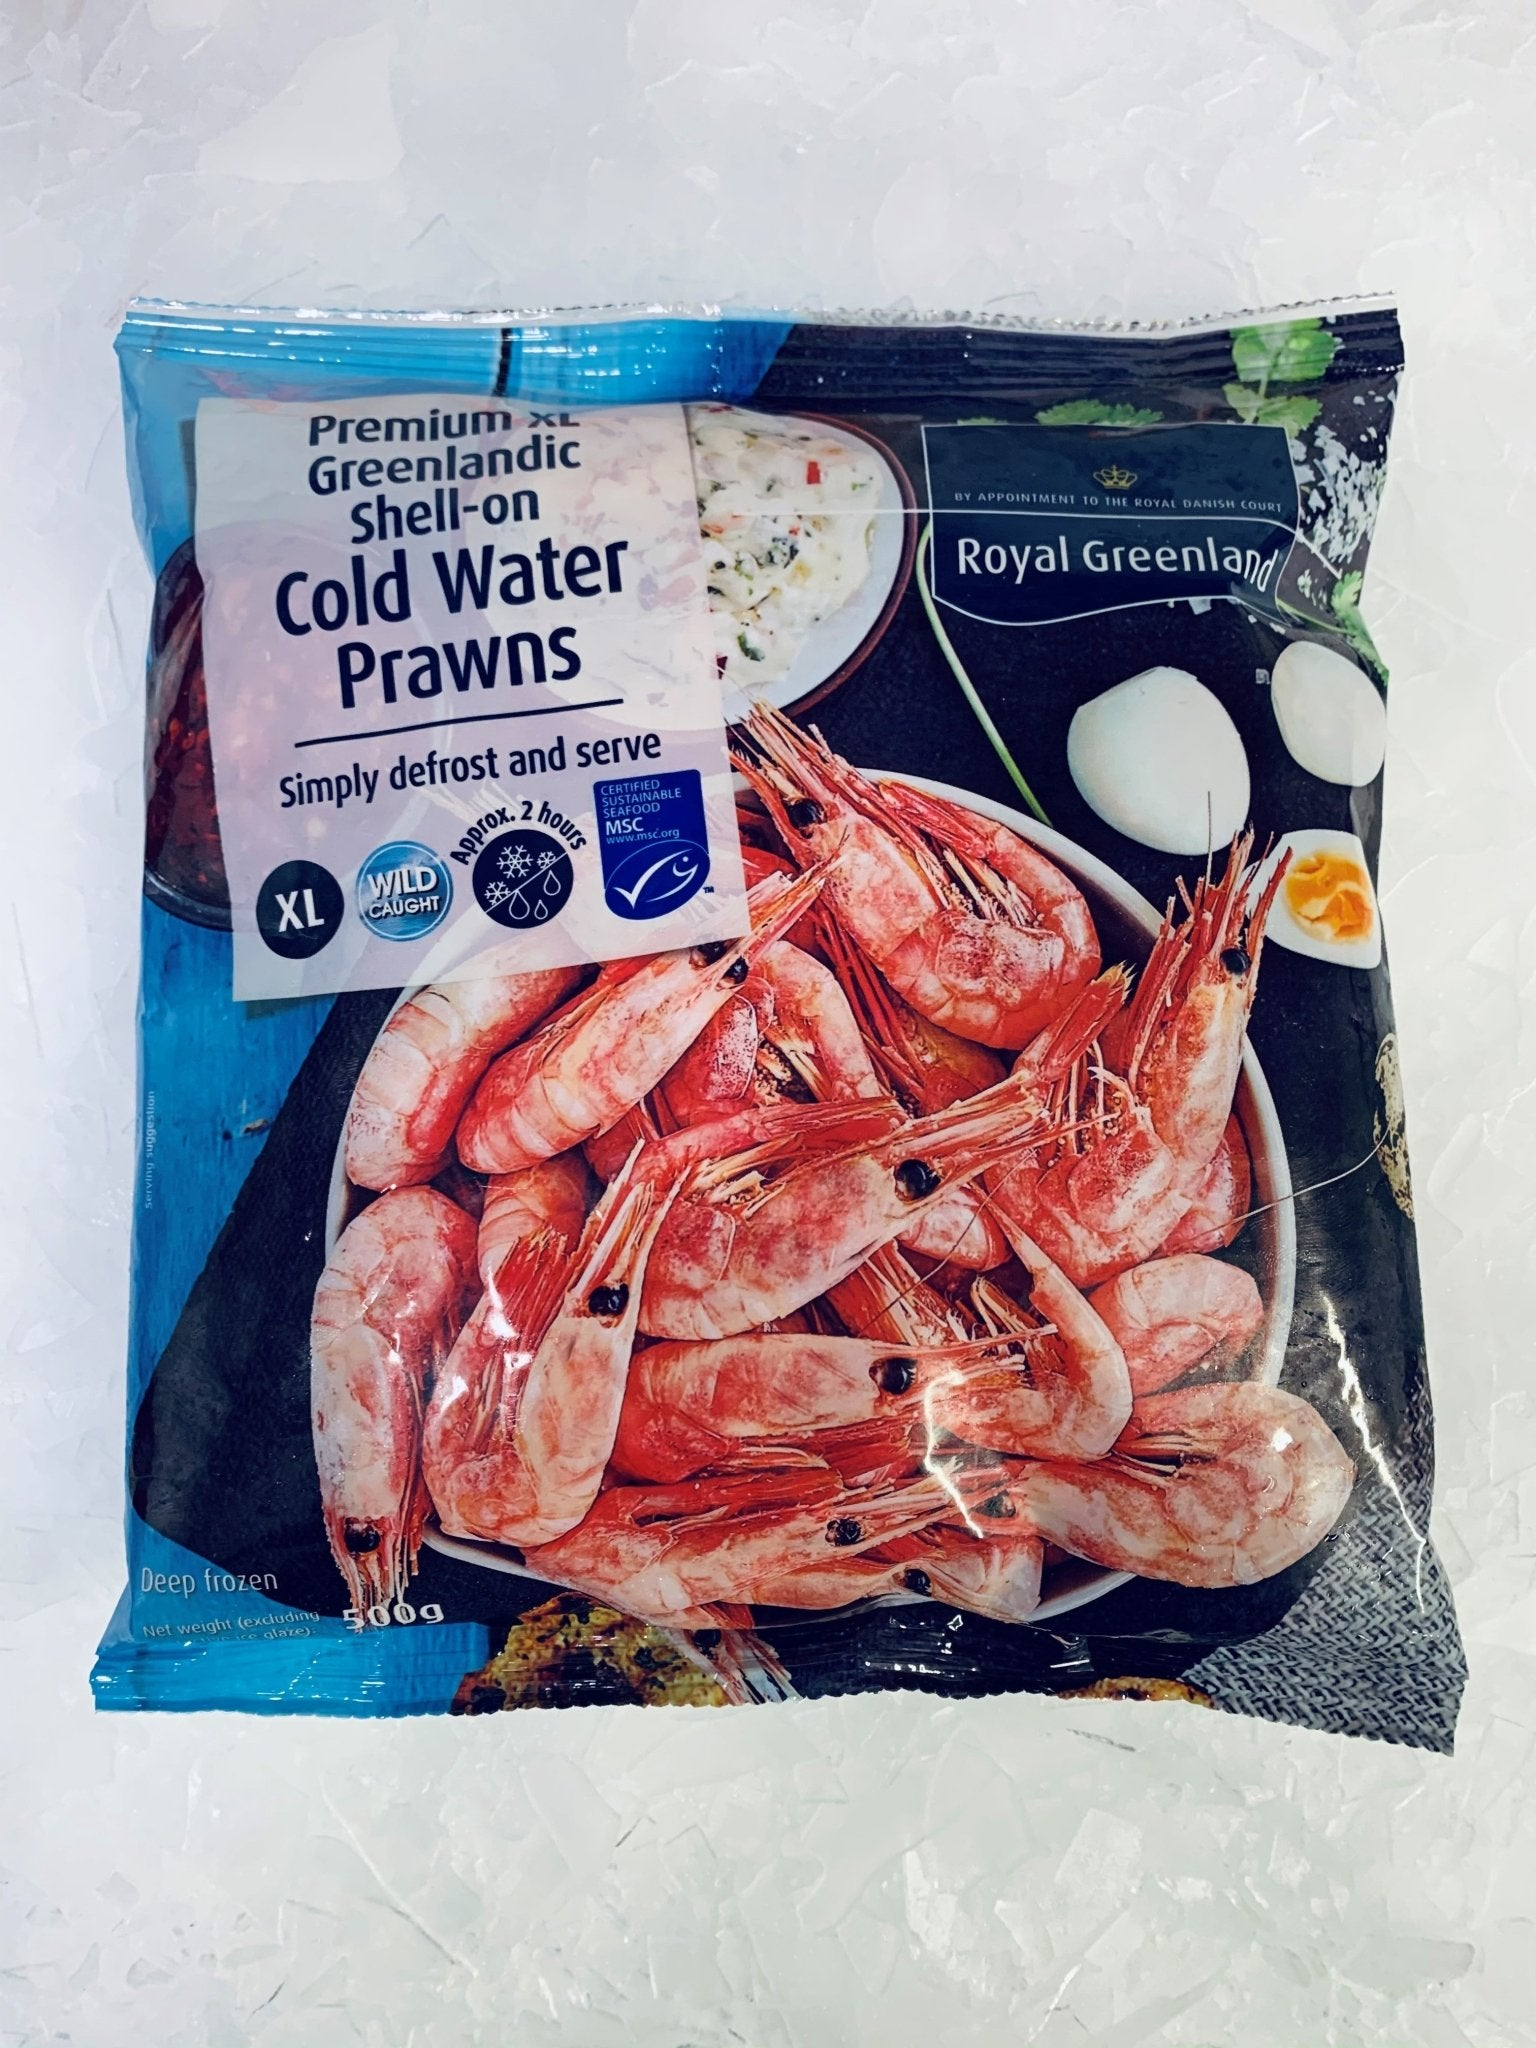 Premium Shell-on Coldwater Prawns - S&J Fisheries